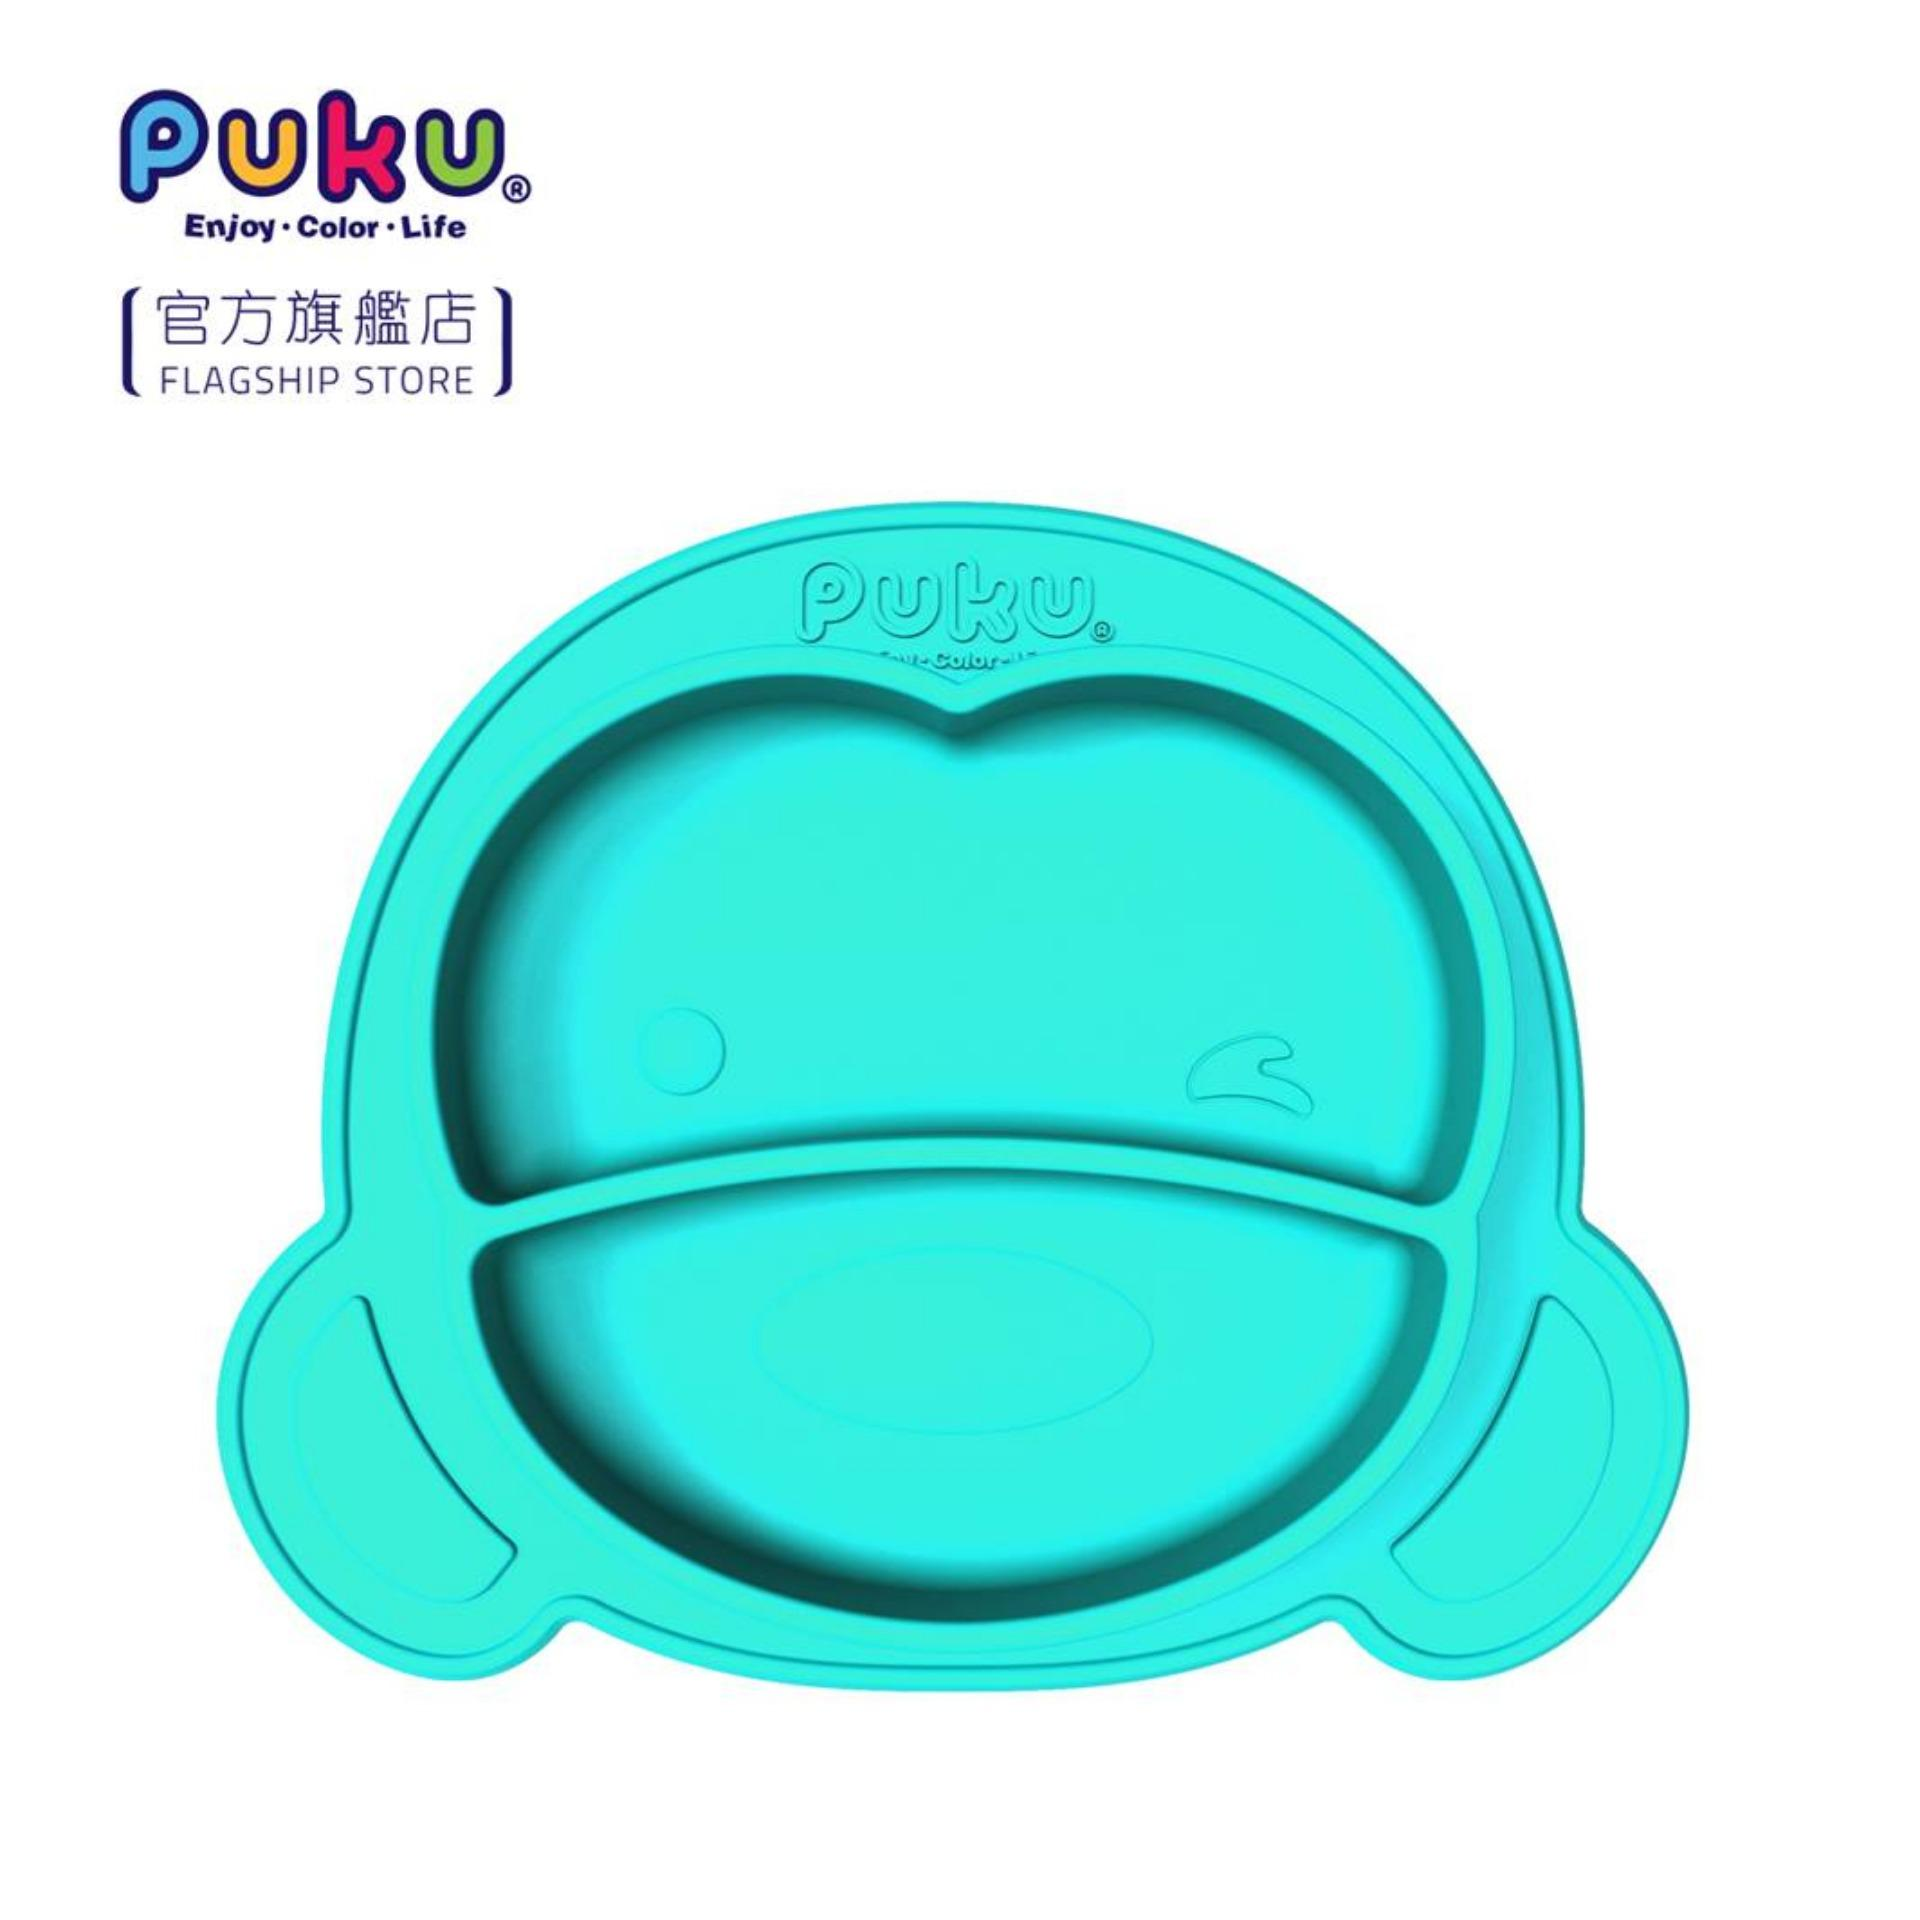 Puku Silicone Suction Plate (blue) By Puku Official Store.